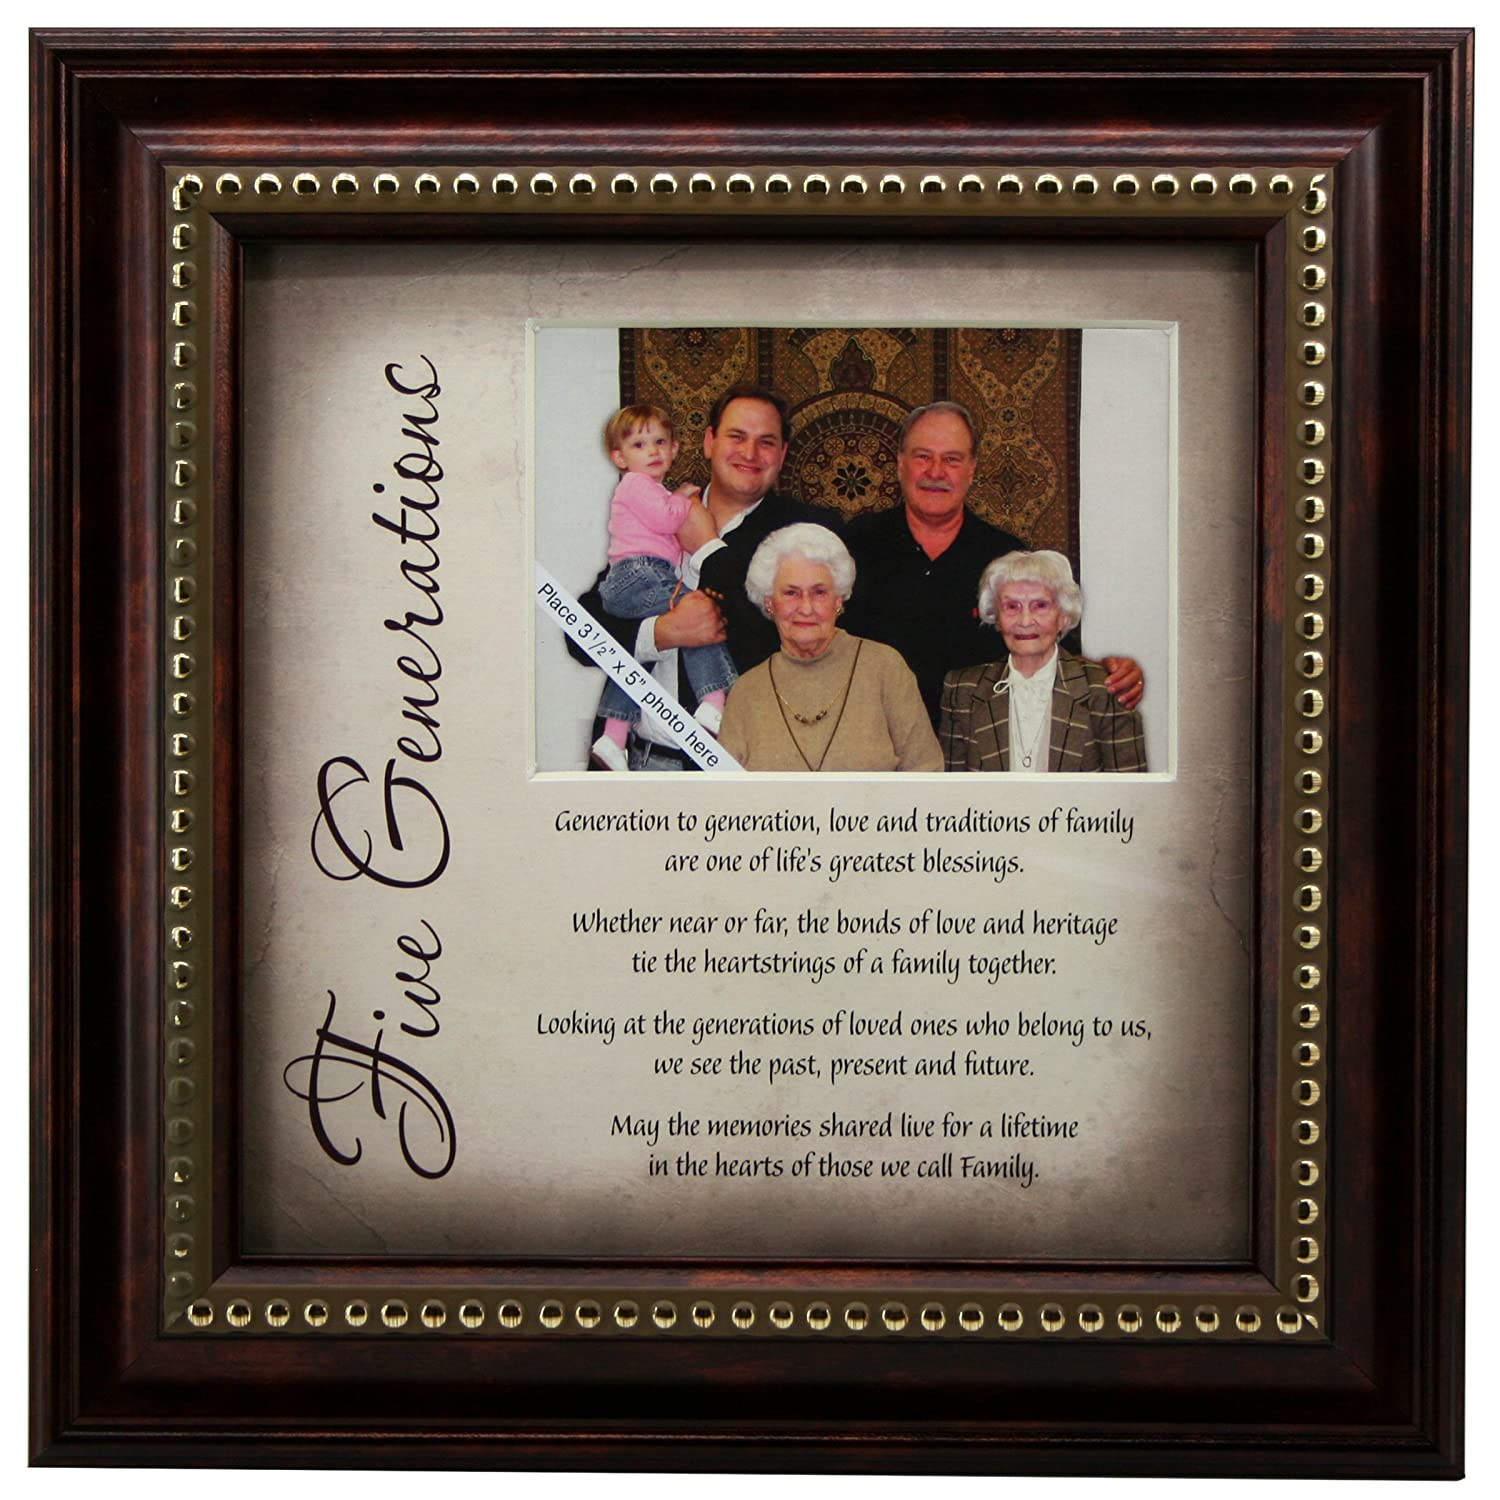 Amazon 5 generations frame and poem gift for great amazon 5 generations frame and poem gift for great grandparents single frames jeuxipadfo Gallery